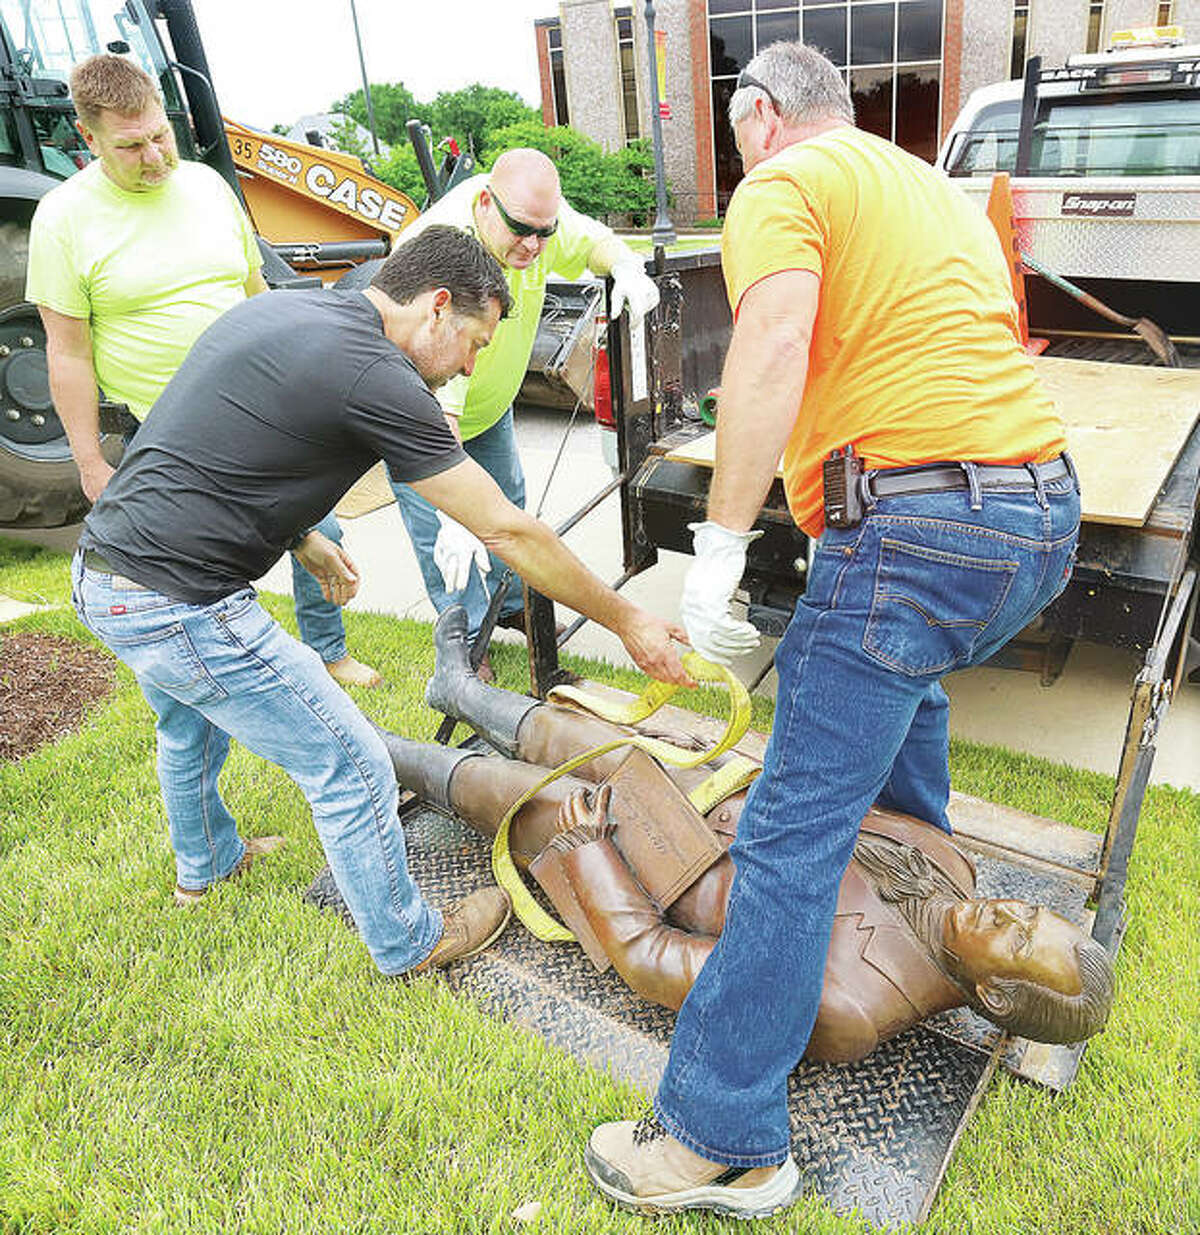 Edwardsville Public Works employees set the controversial statue of Ninian Edwards on the back of the lift gate used to put the statue in the back of a city truck. The founder of Edwardsville and first territorial governor in the early 1800s owned slaves. After a cement pad is finished, the statue will be returned to City Plaza in a slightly different spot.